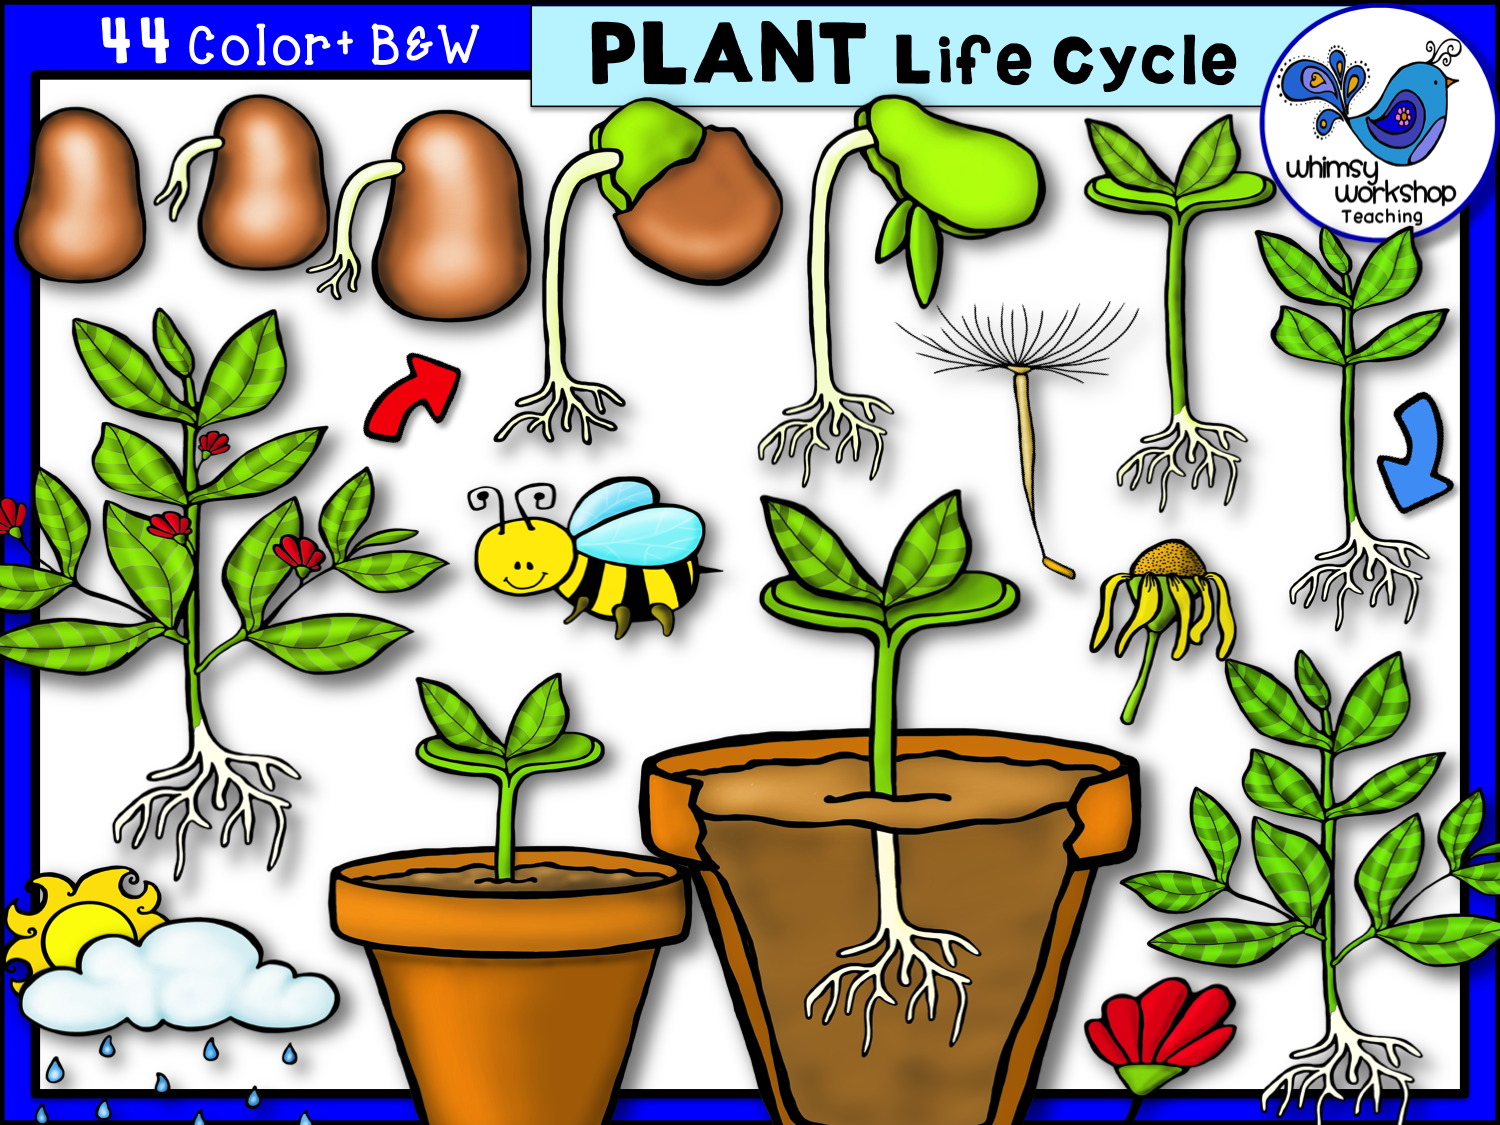 Whimsy Workshop Teaching Teacher Graphics Plant Life Cycle Life Cycles Clip Art [ 1125 x 1500 Pixel ]